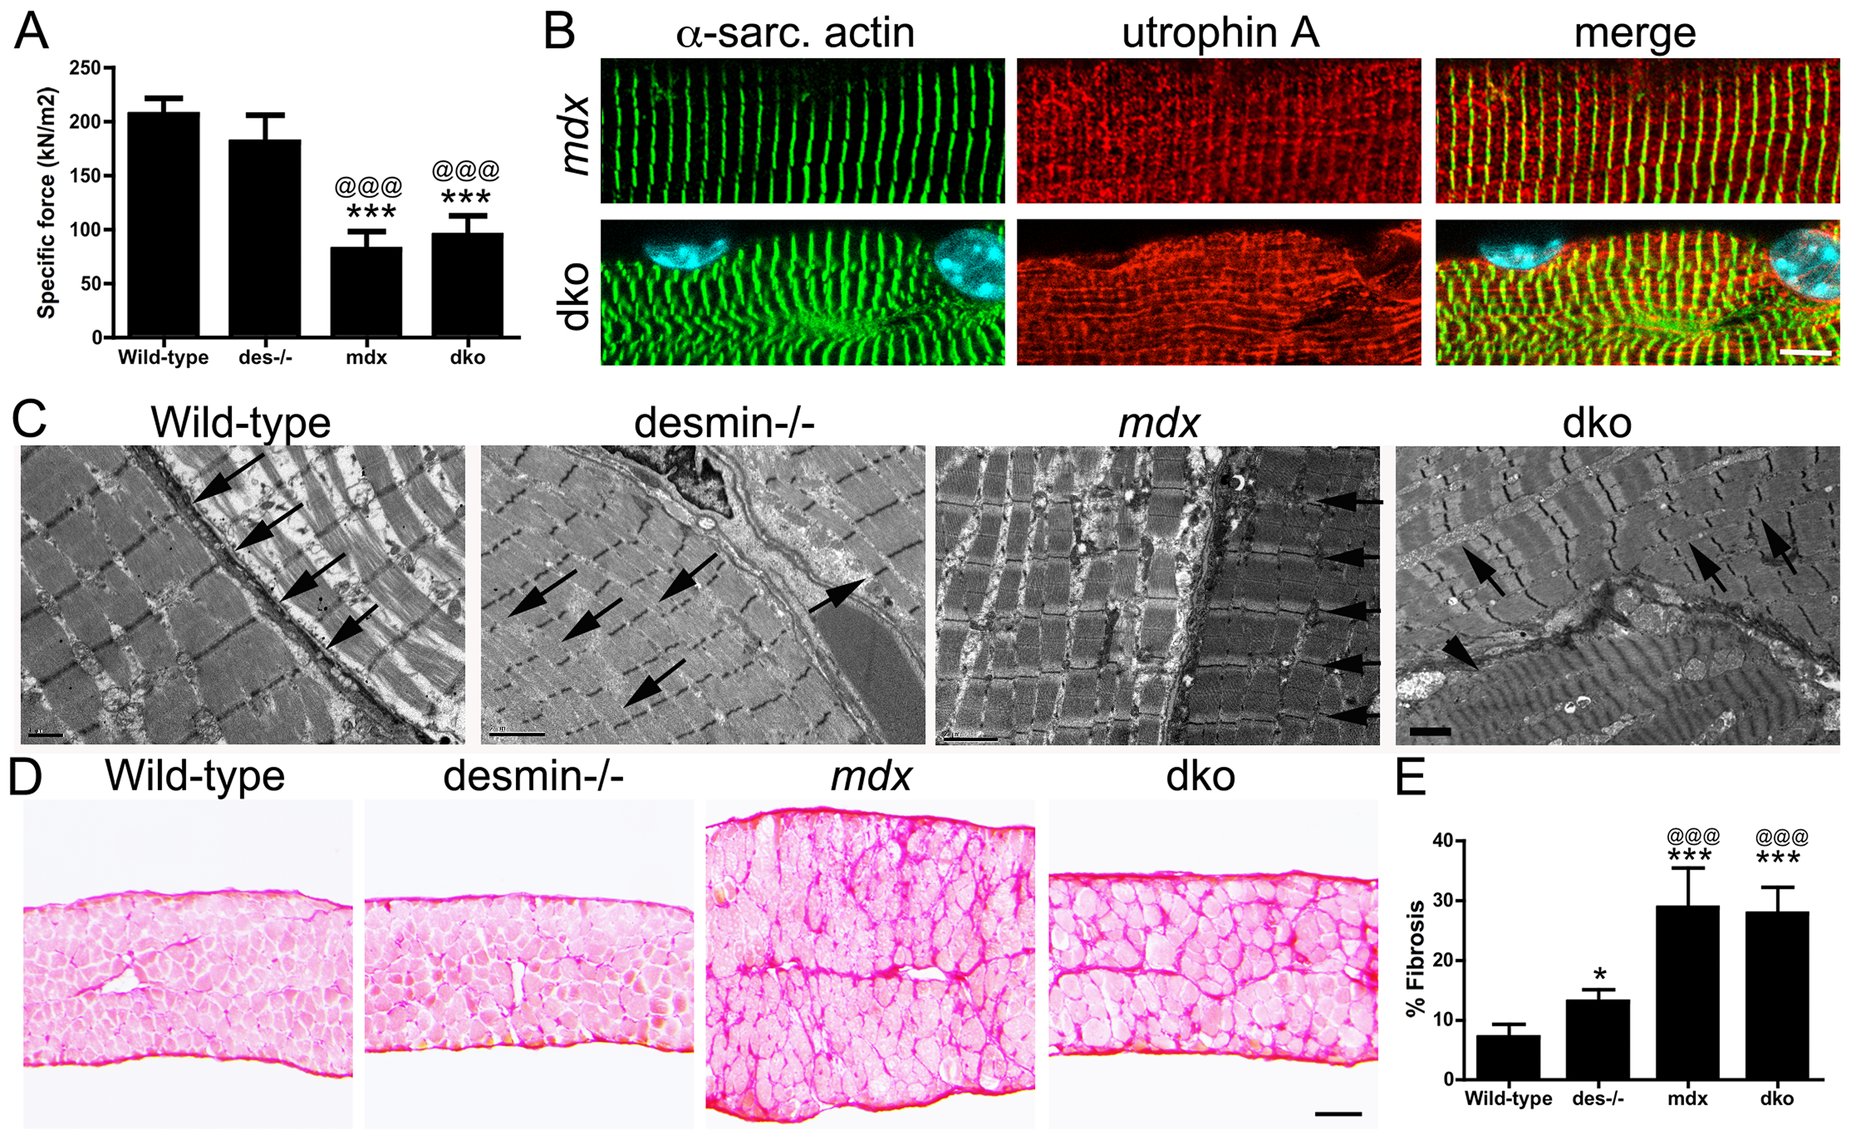 Impaired diaphragm function in the dko correlates with loss of sarcomere alignment and deposition of collagen.